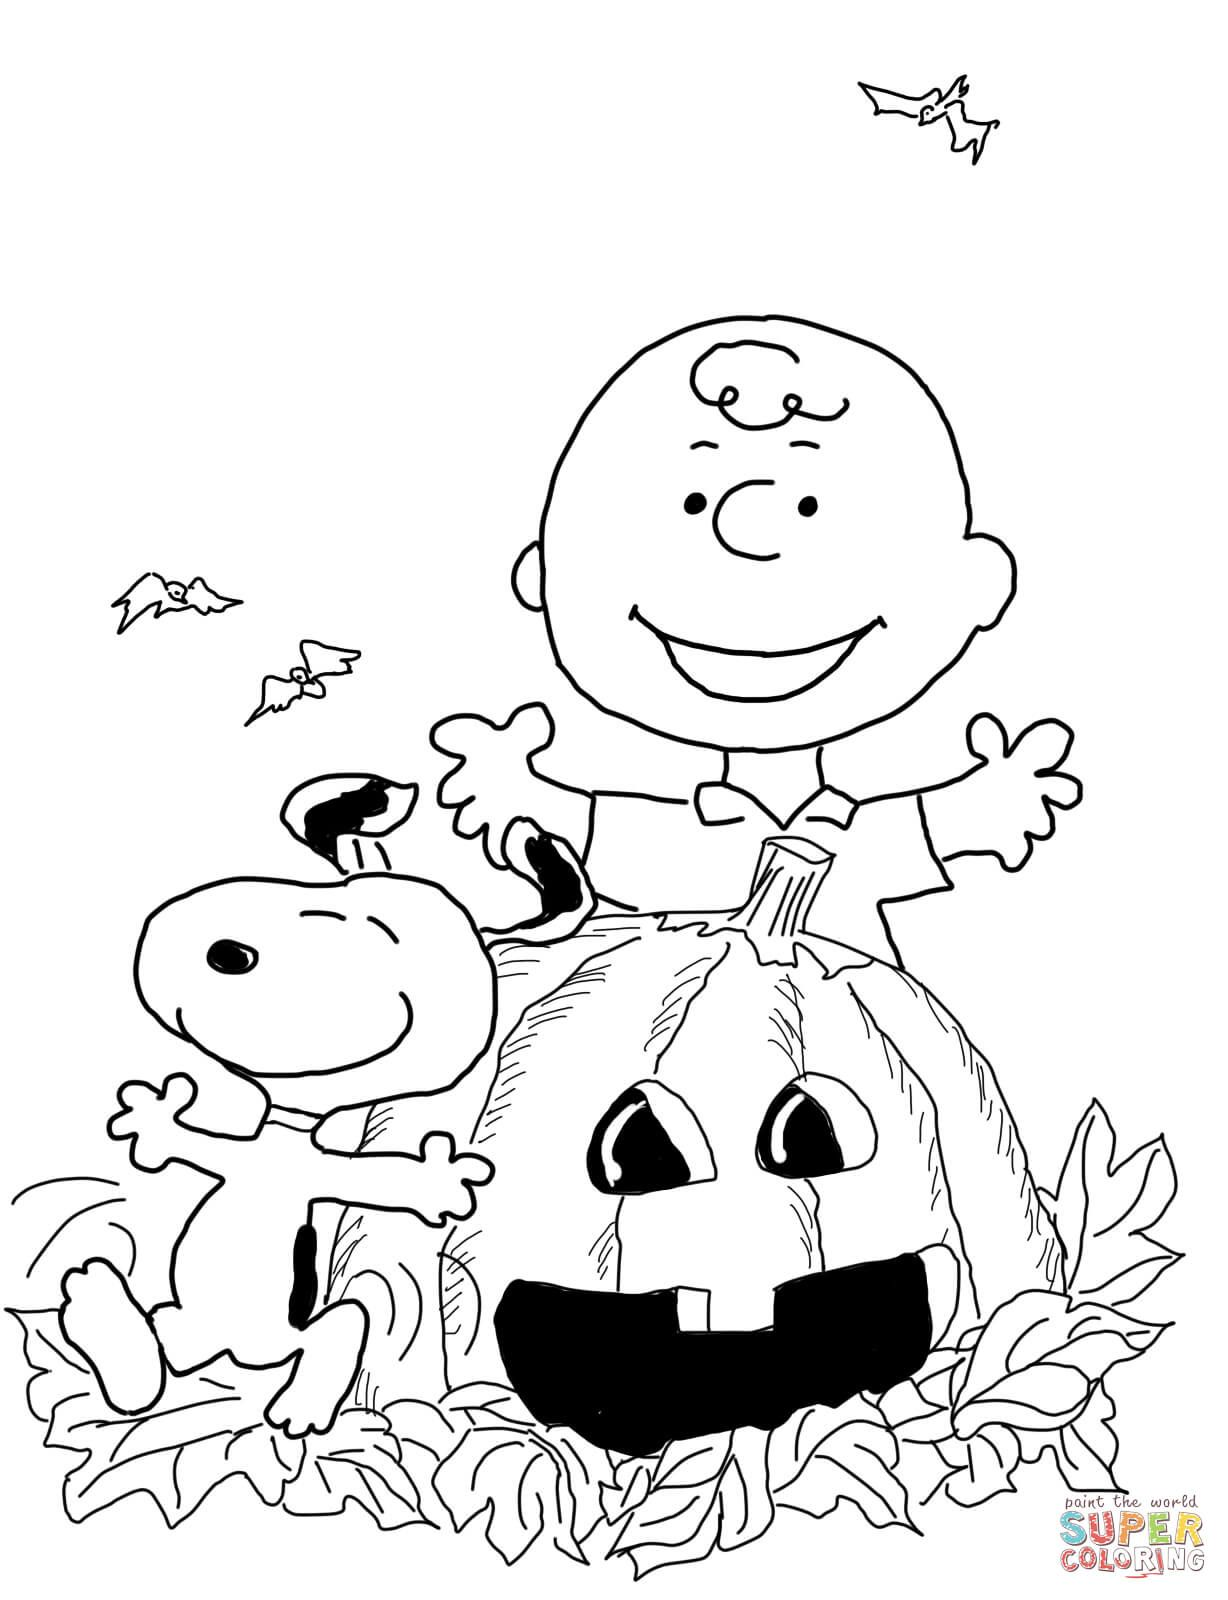 1228x1600 Charlie Brown Halloween Coloring Page From Peanuts Category